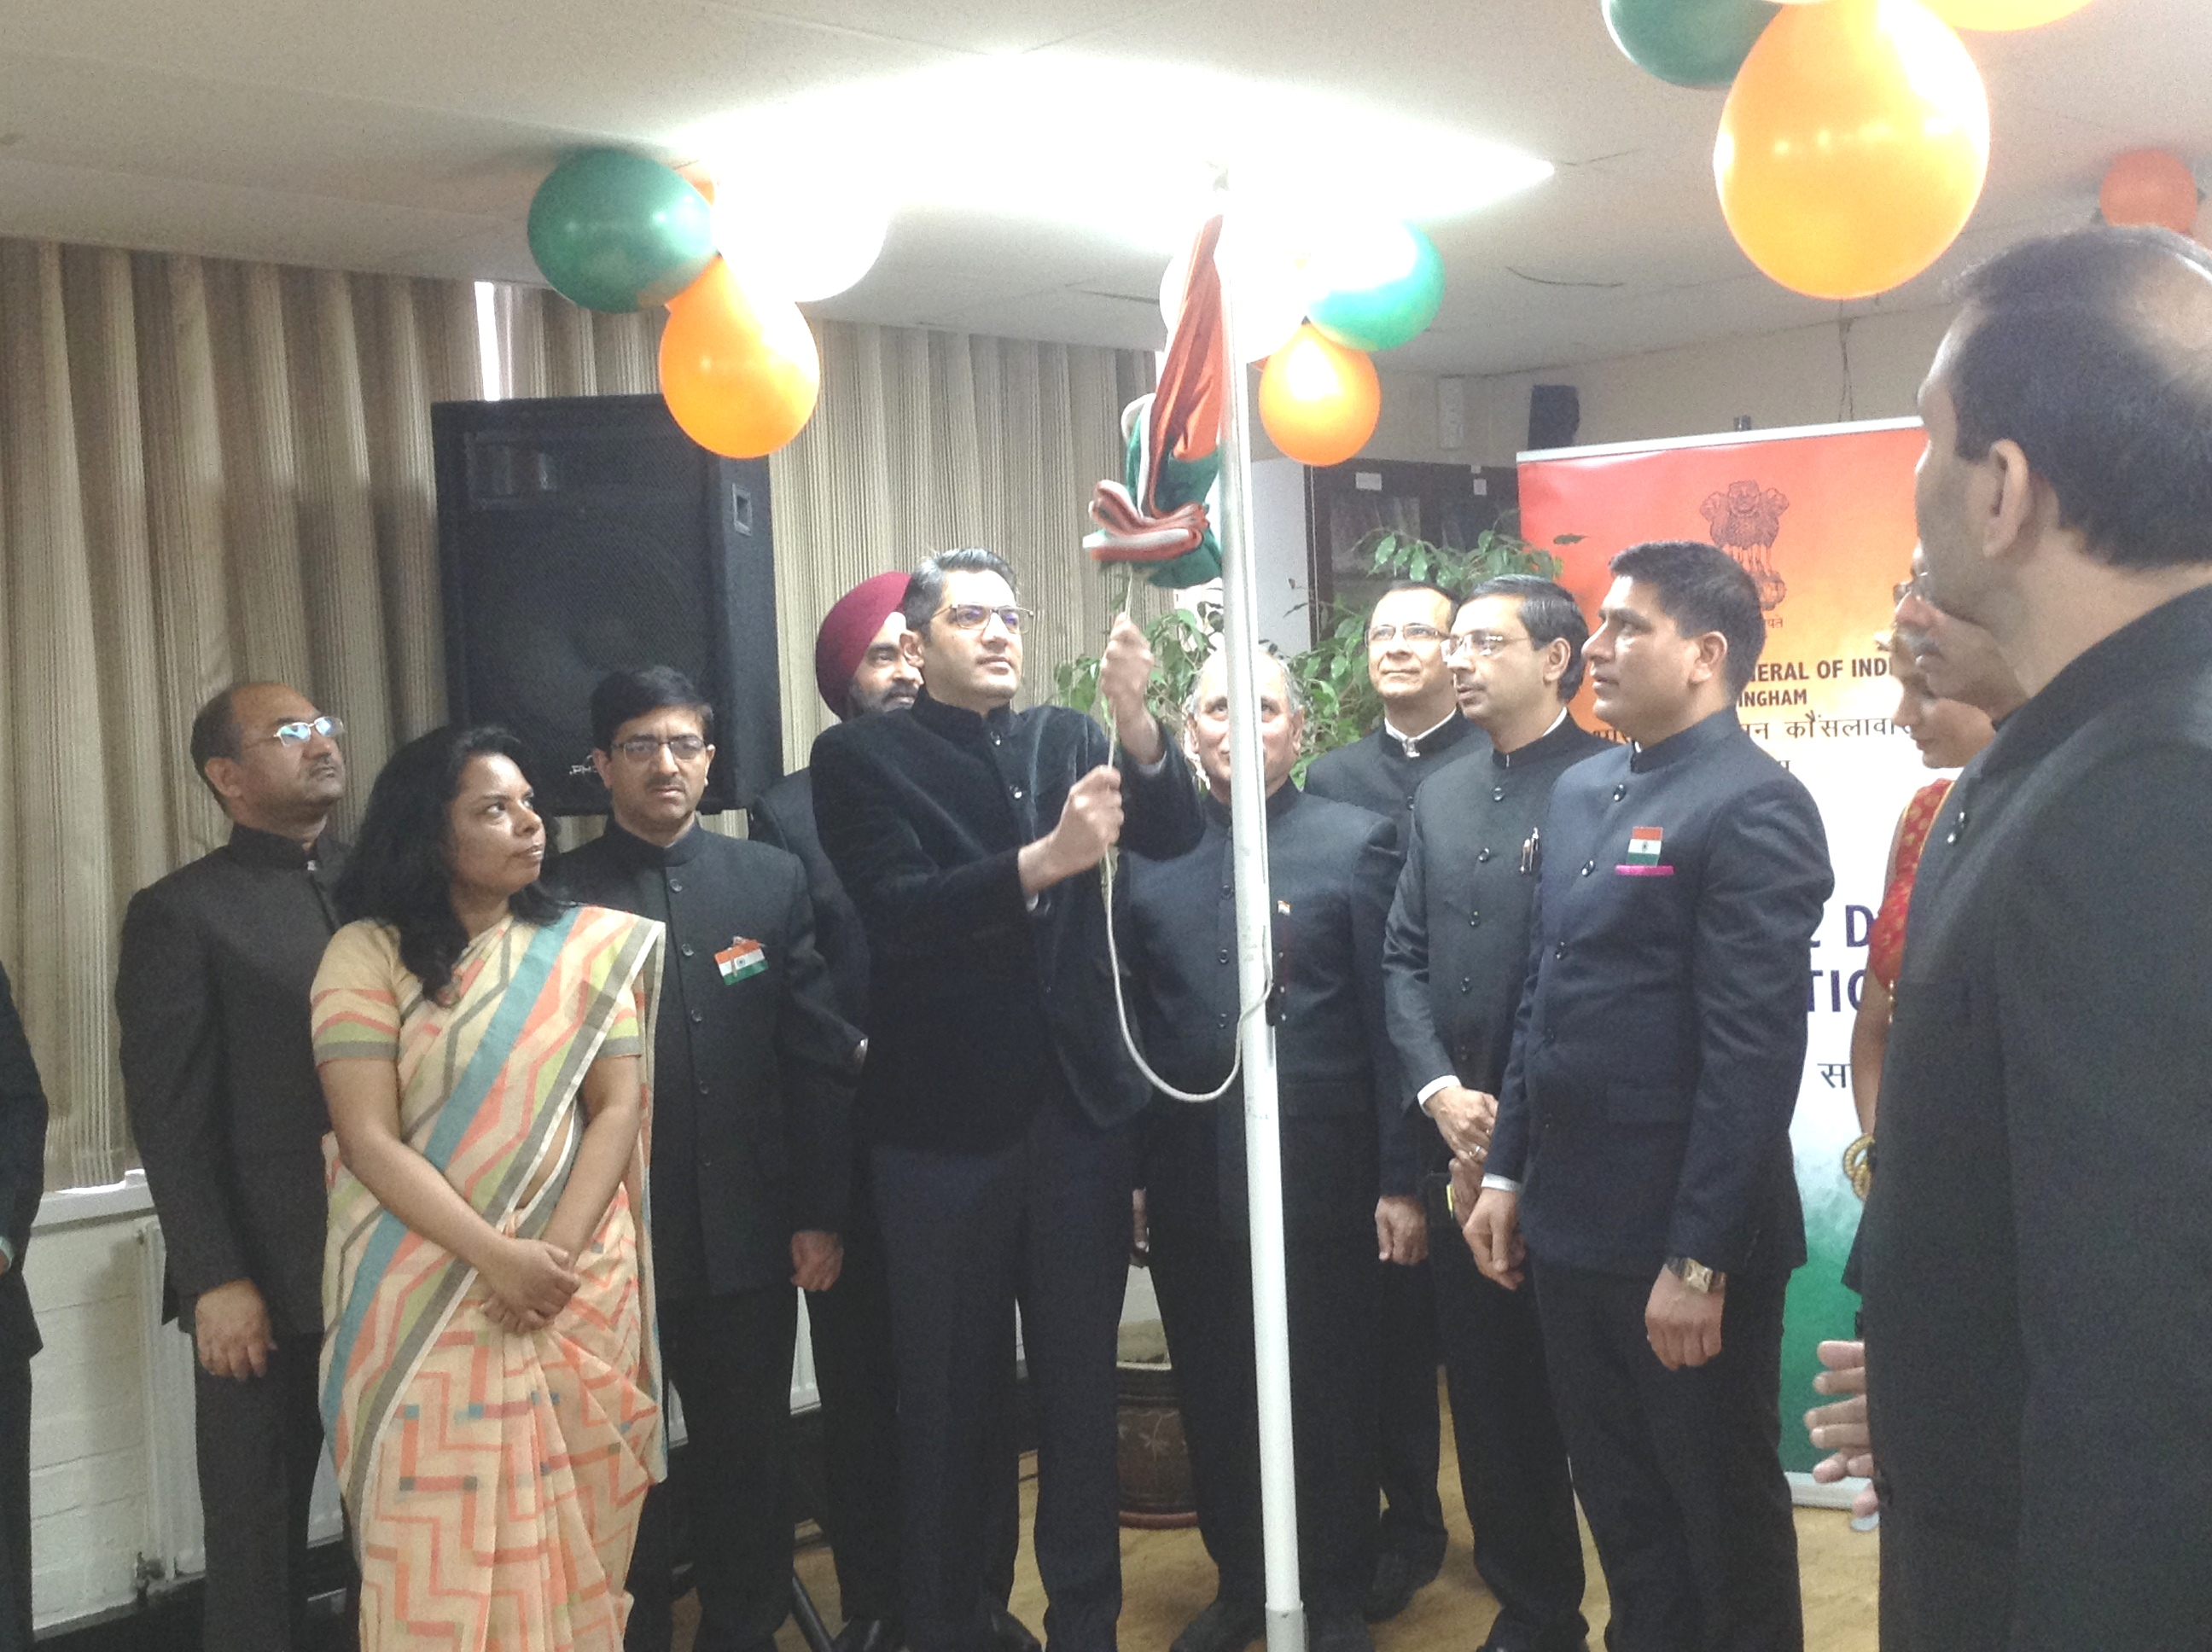 Celebration of 70th Republic Day at CGI,Birmingham